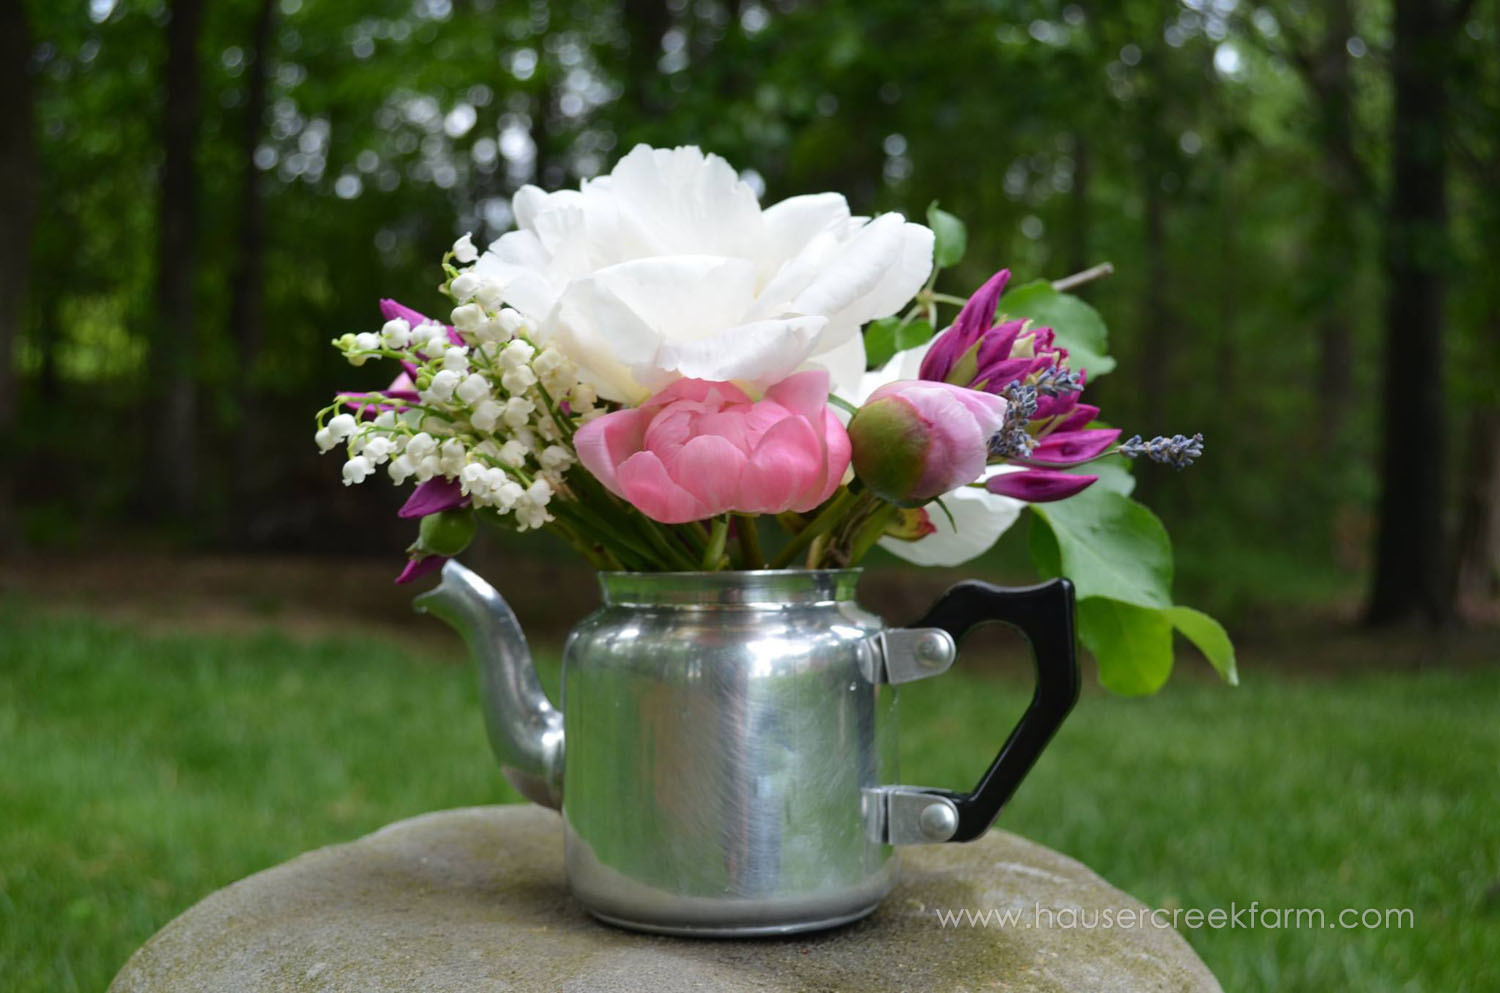 Assorted cut flowers in pinks and white